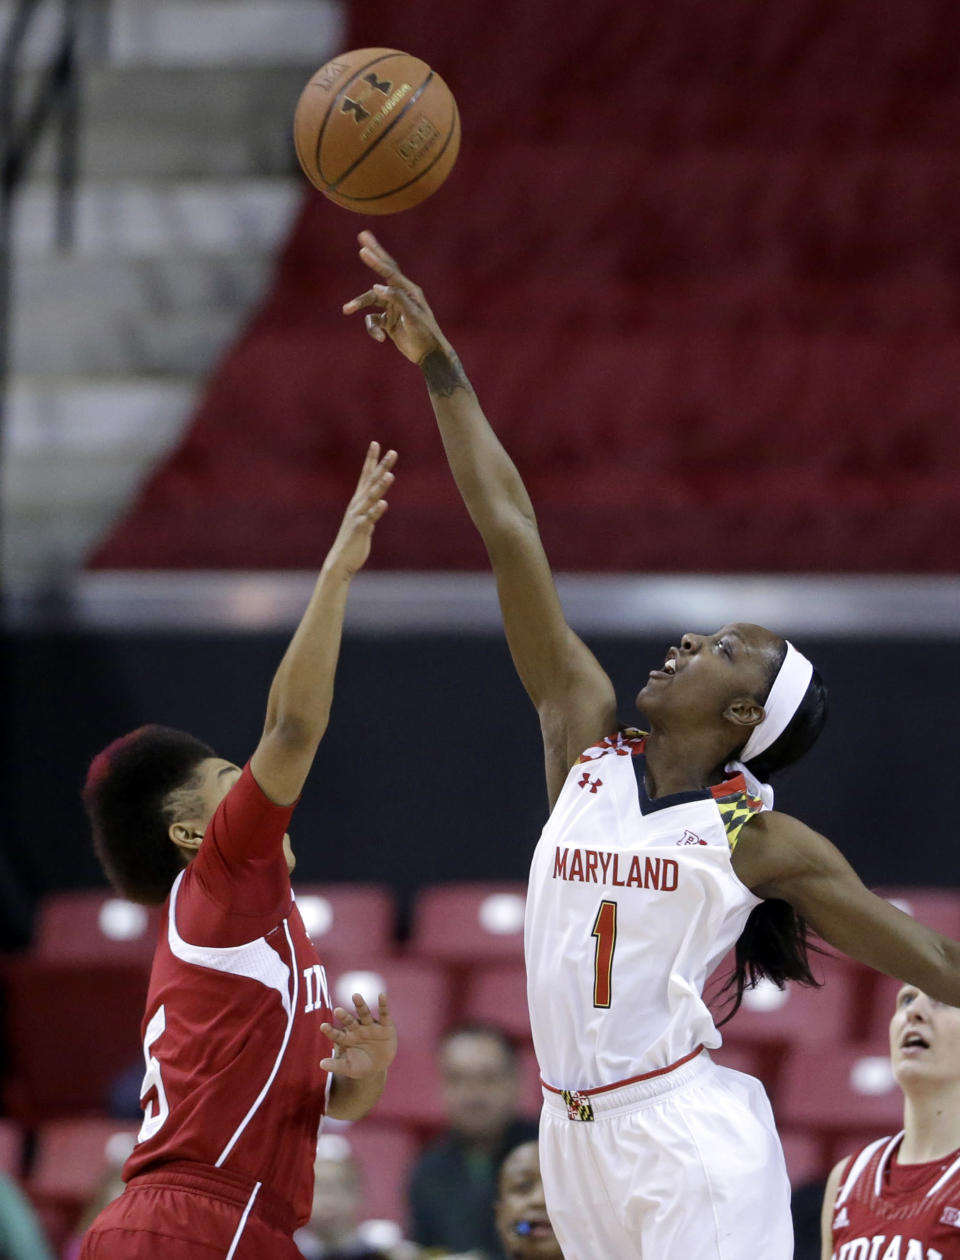 Maryland guard Laurin Mincy, right, reaches for a rebound over Indiana guard Larryn Brooks in the first half of an NCAA college basketball game, Thursday, Feb. 26, 2015, in College Park, Md. (AP Photo/Patrick Semansky)